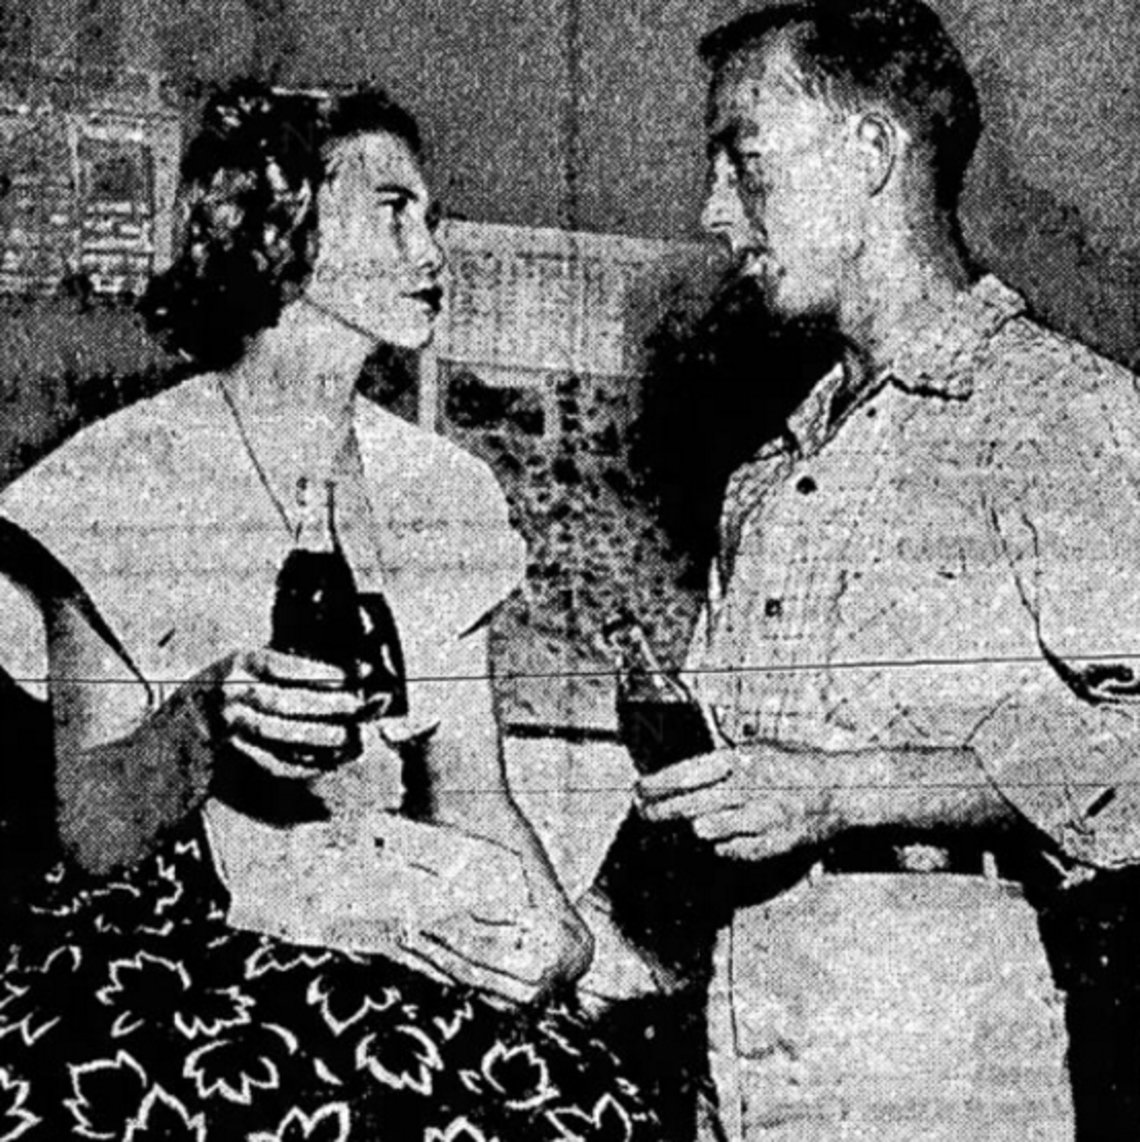 Norma Padgett and her husband Willie after questioning by the state's attorney, in a 1949 newspaper clipping.